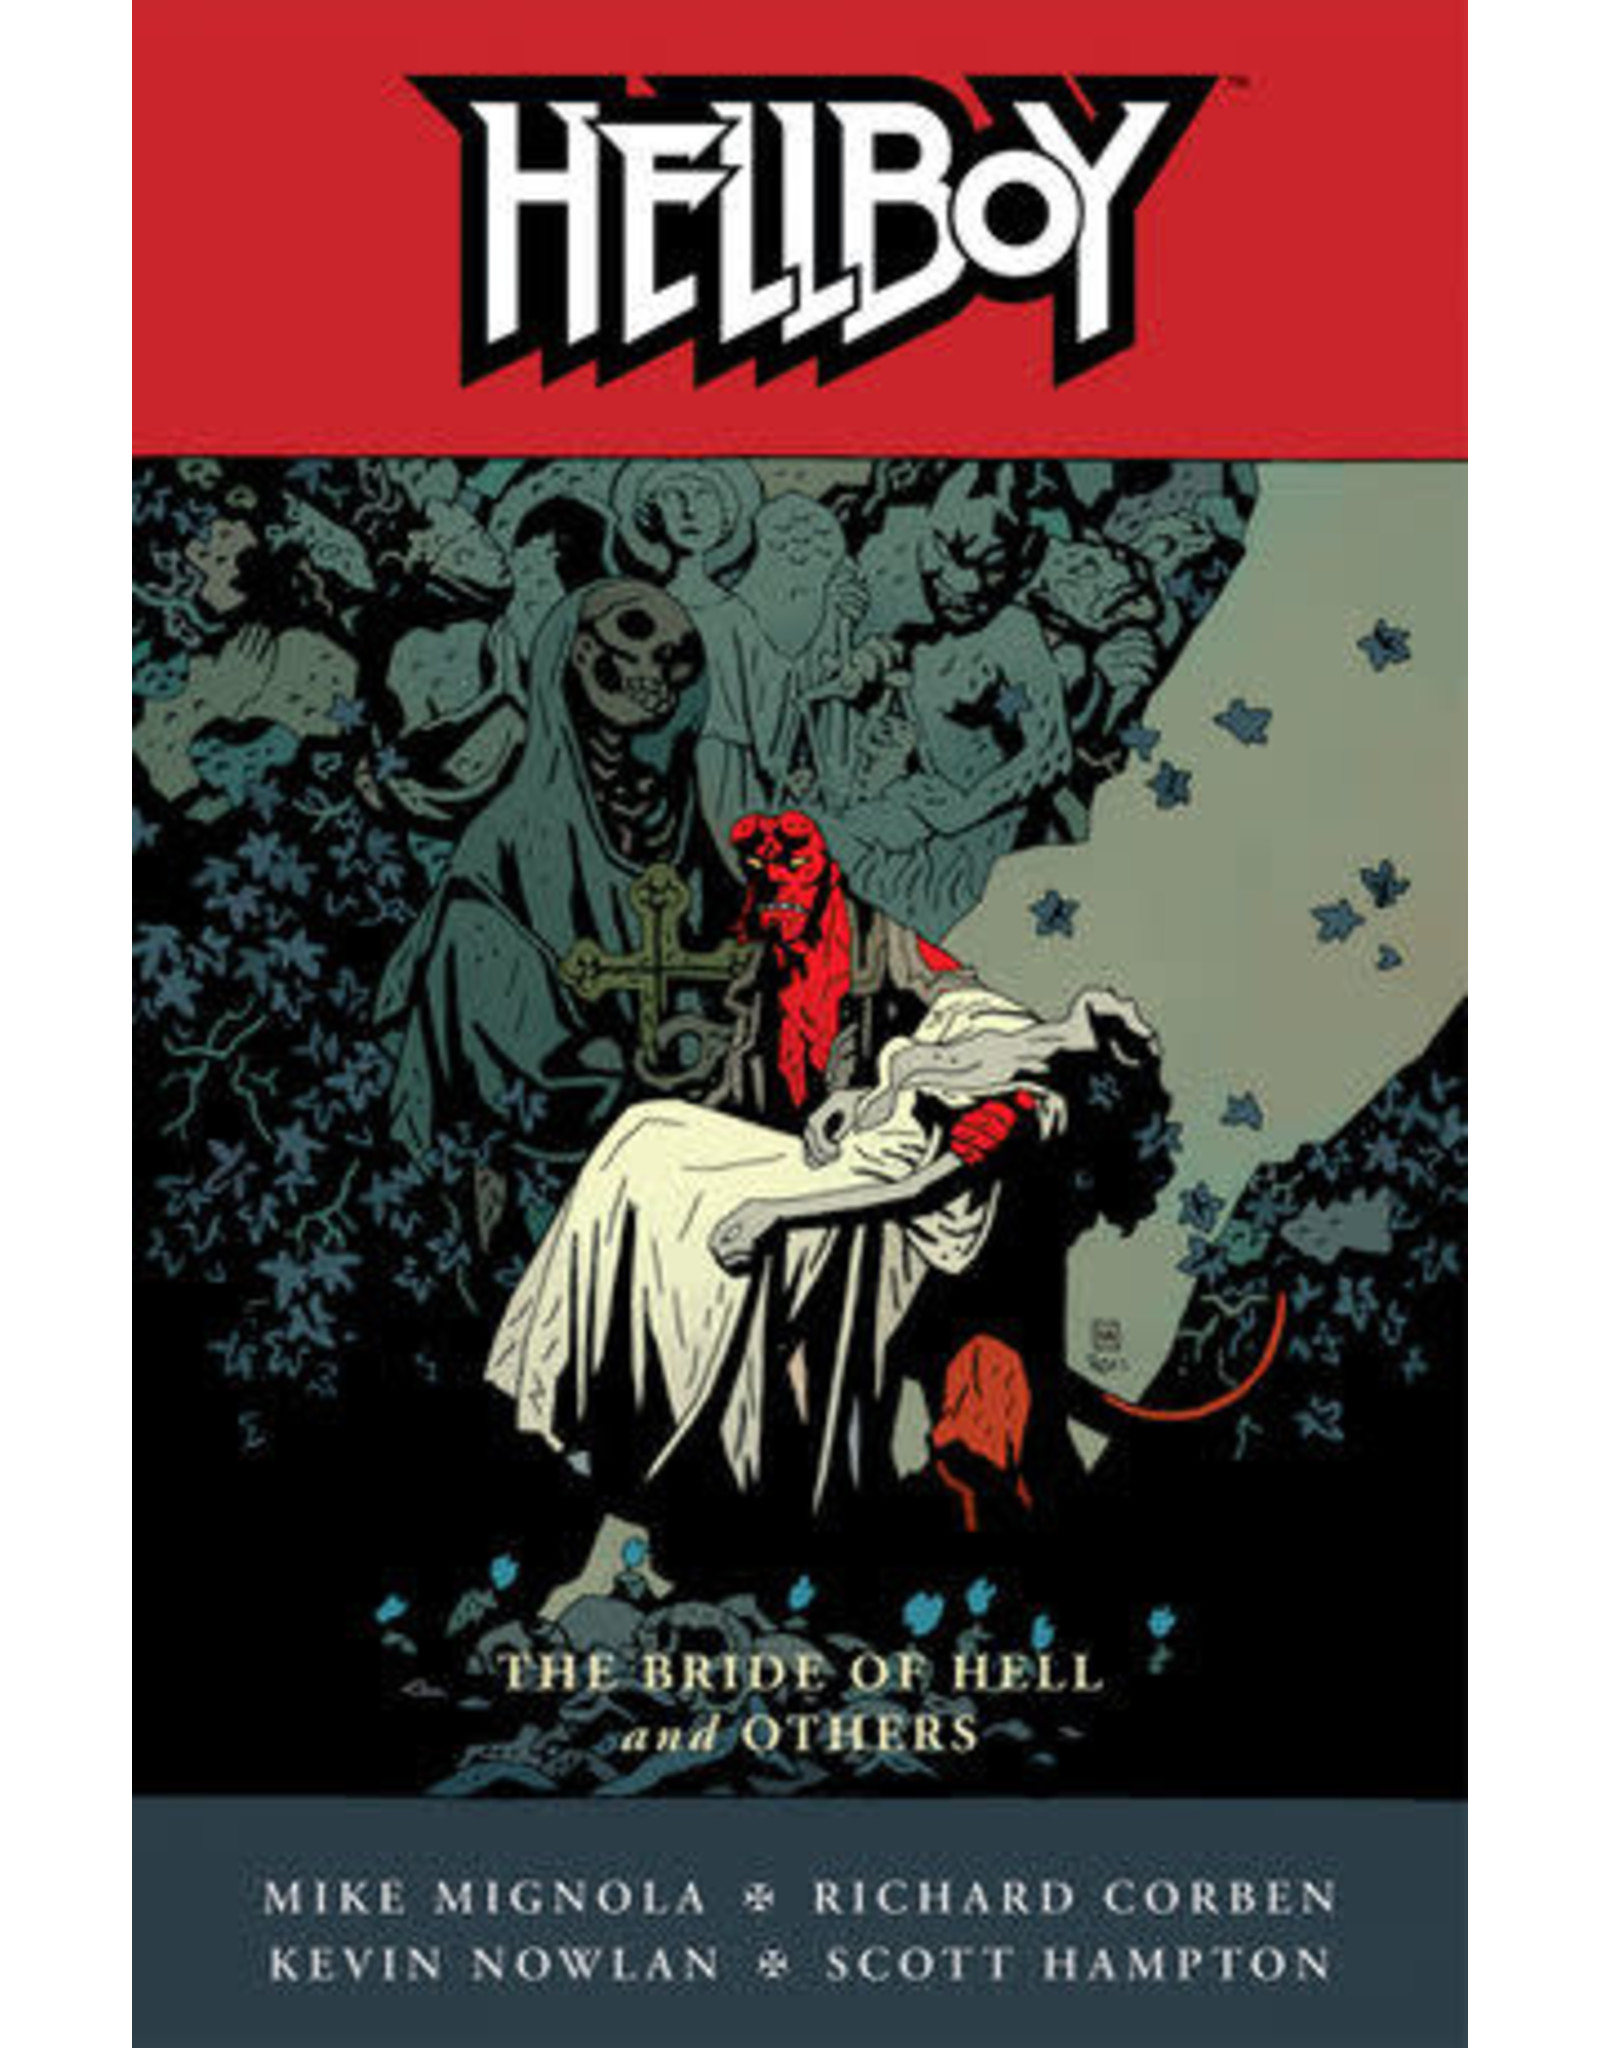 DARK HORSE COMICS HELLBOY TP VOL 11 BRIDE OF HELL & OTHERS